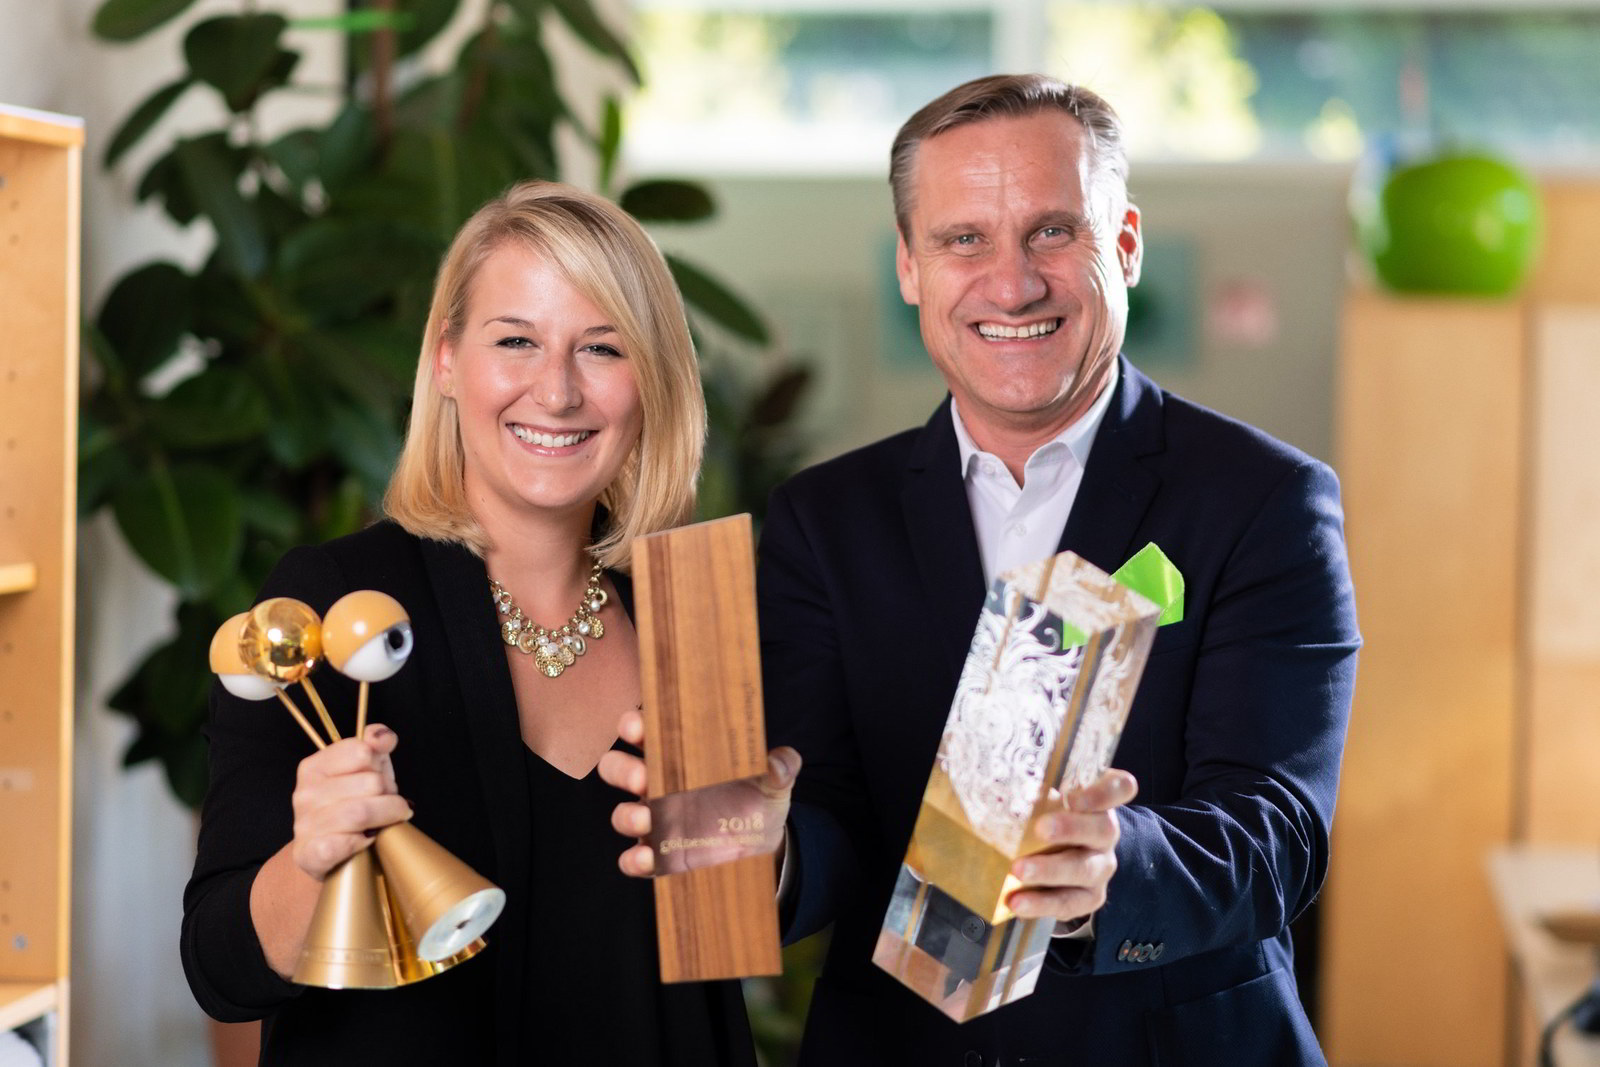 Putz & Stingl Honoured As One Of Austria's Leading Companies